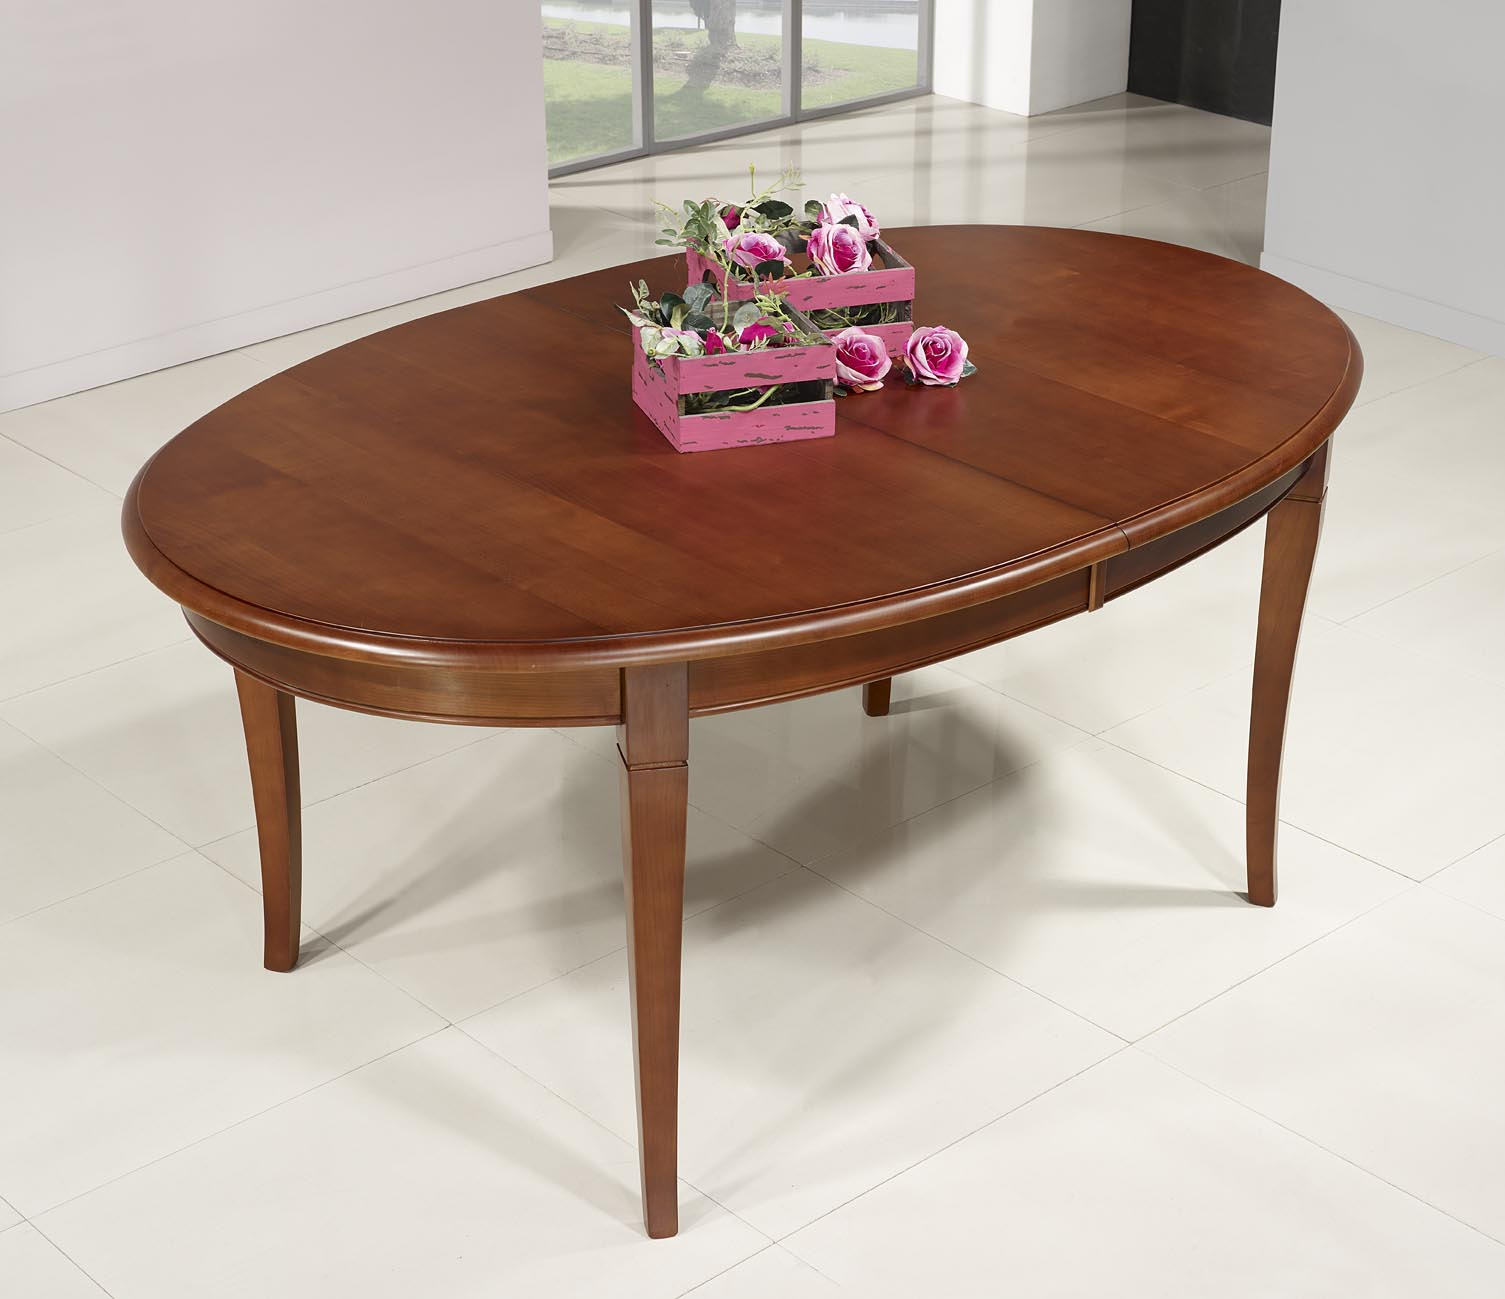 Table ovale de salle manger estelle en merisier massif de style louis philippe 5 allonges de - Set de table ovale ...